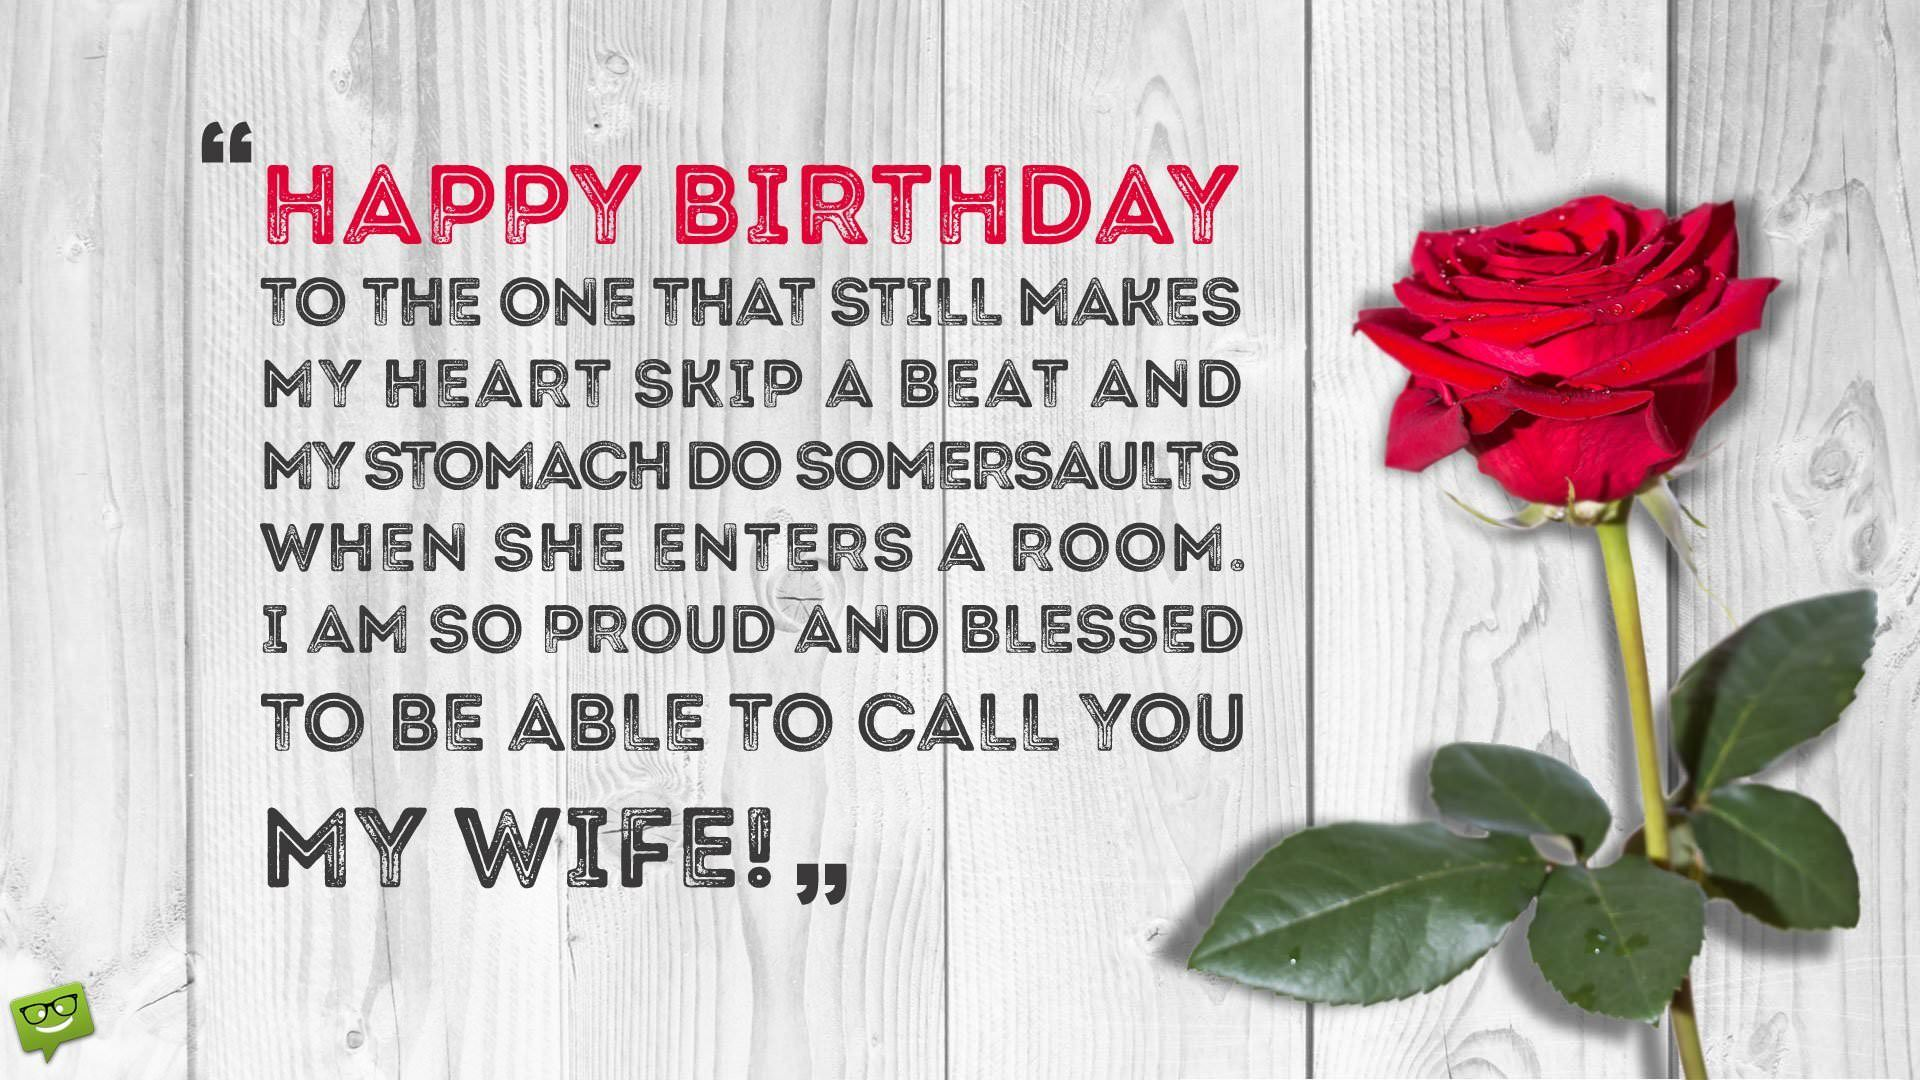 220 Birthday Wishes Your Wife Would Appreciate Sister Birthday Quotes Romantic Birthday Wishes Birthday Quotes Funny